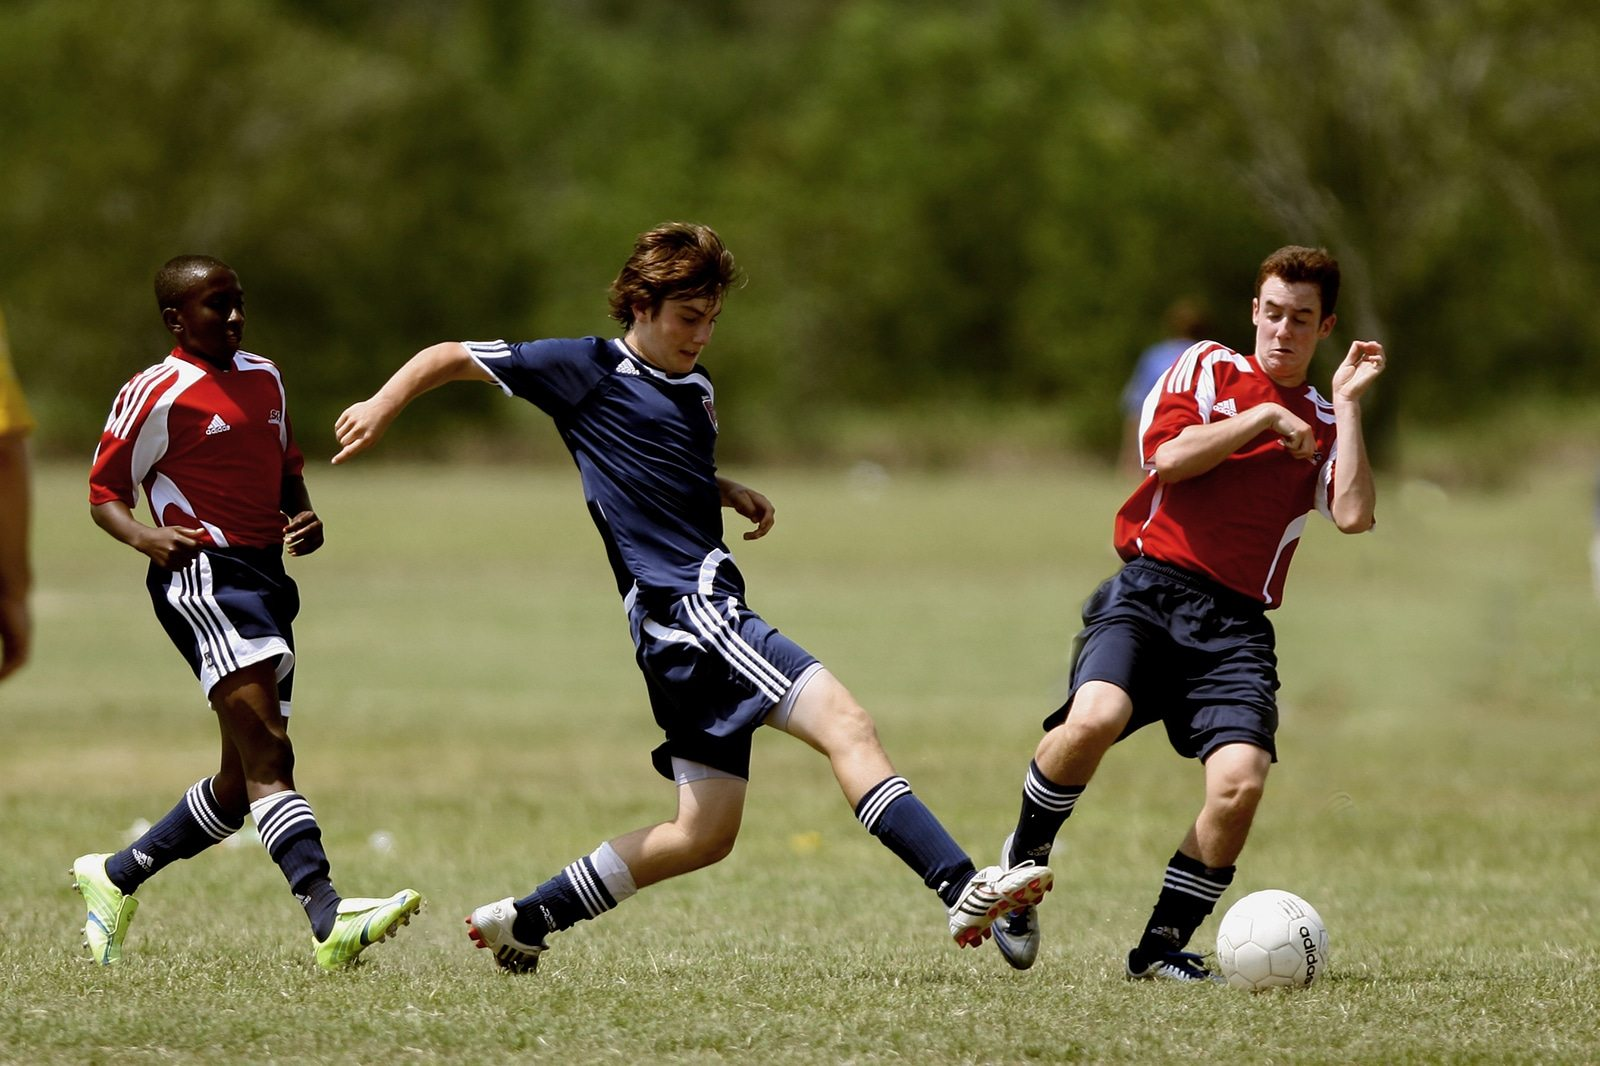 3 Ways to Prep Student-Athletes for Events